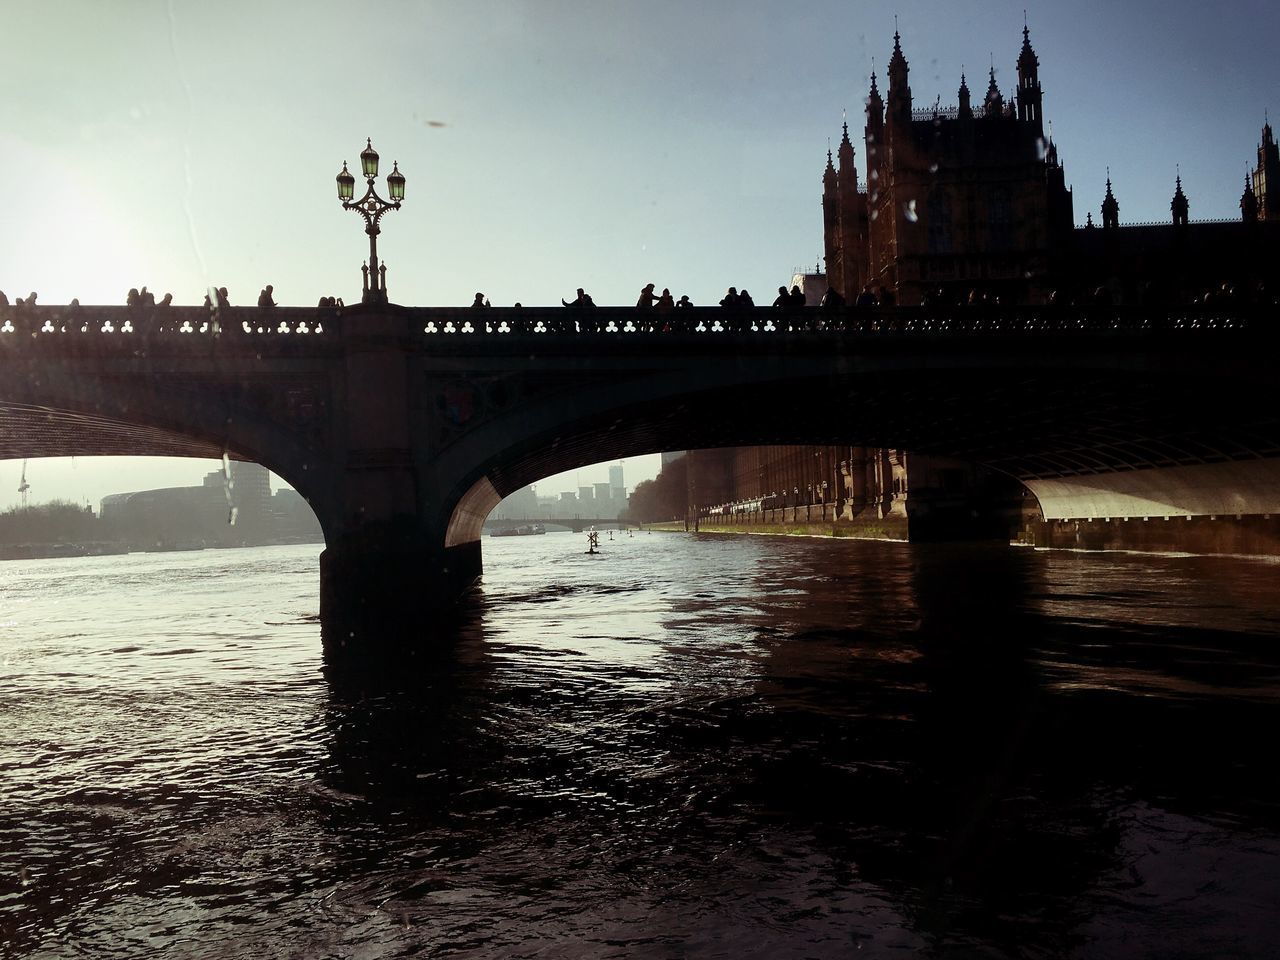 Architecture Built Structure Sky Water Building Exterior River Waterfront Outdoors Day City No People Bridge - Man Made Structure London My Year My View Weather United Kingdom Tranquil Scene Ship Westminster Big Ben Love Quiet Moments Quiet IPhoneography IPhone